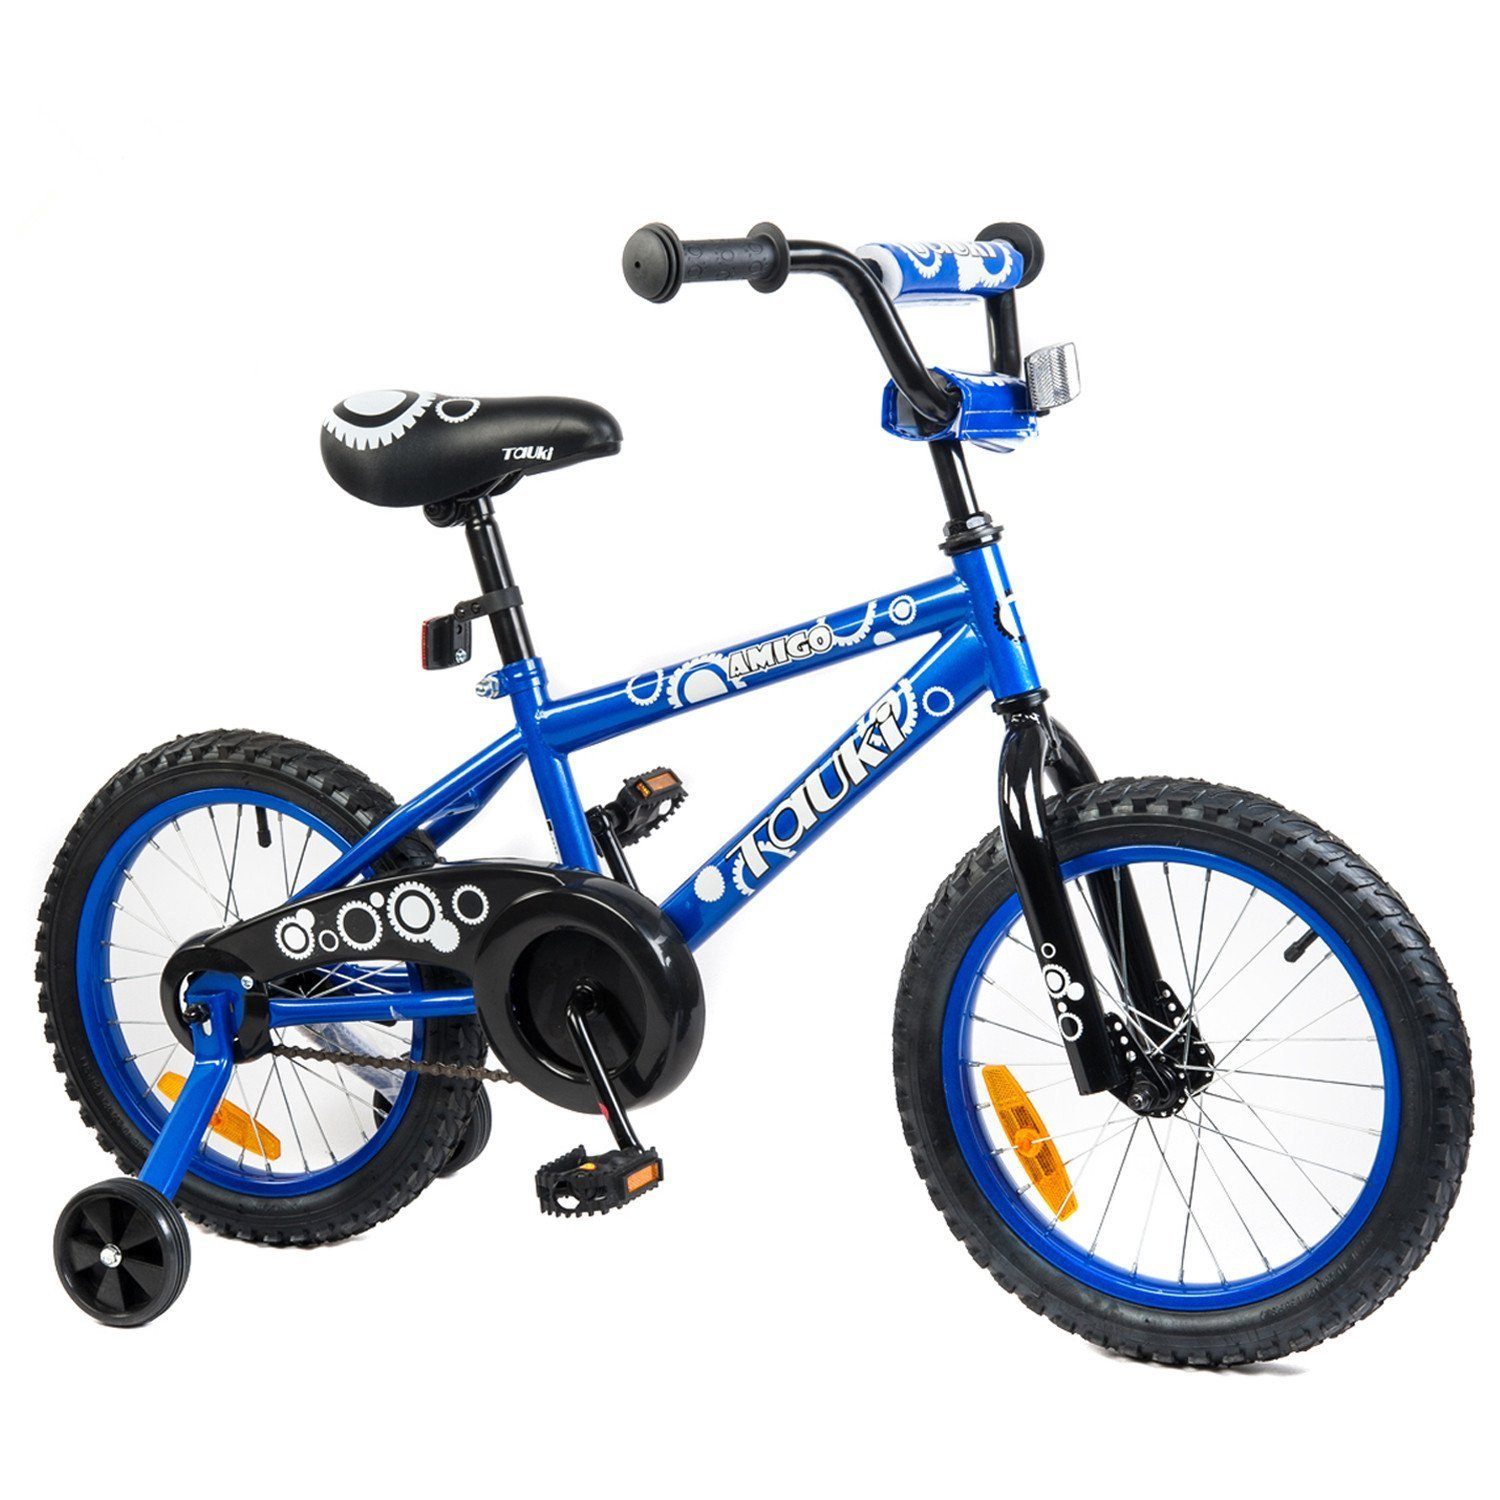 Tauki Kid Bike BMX Bike for Boys and Girls